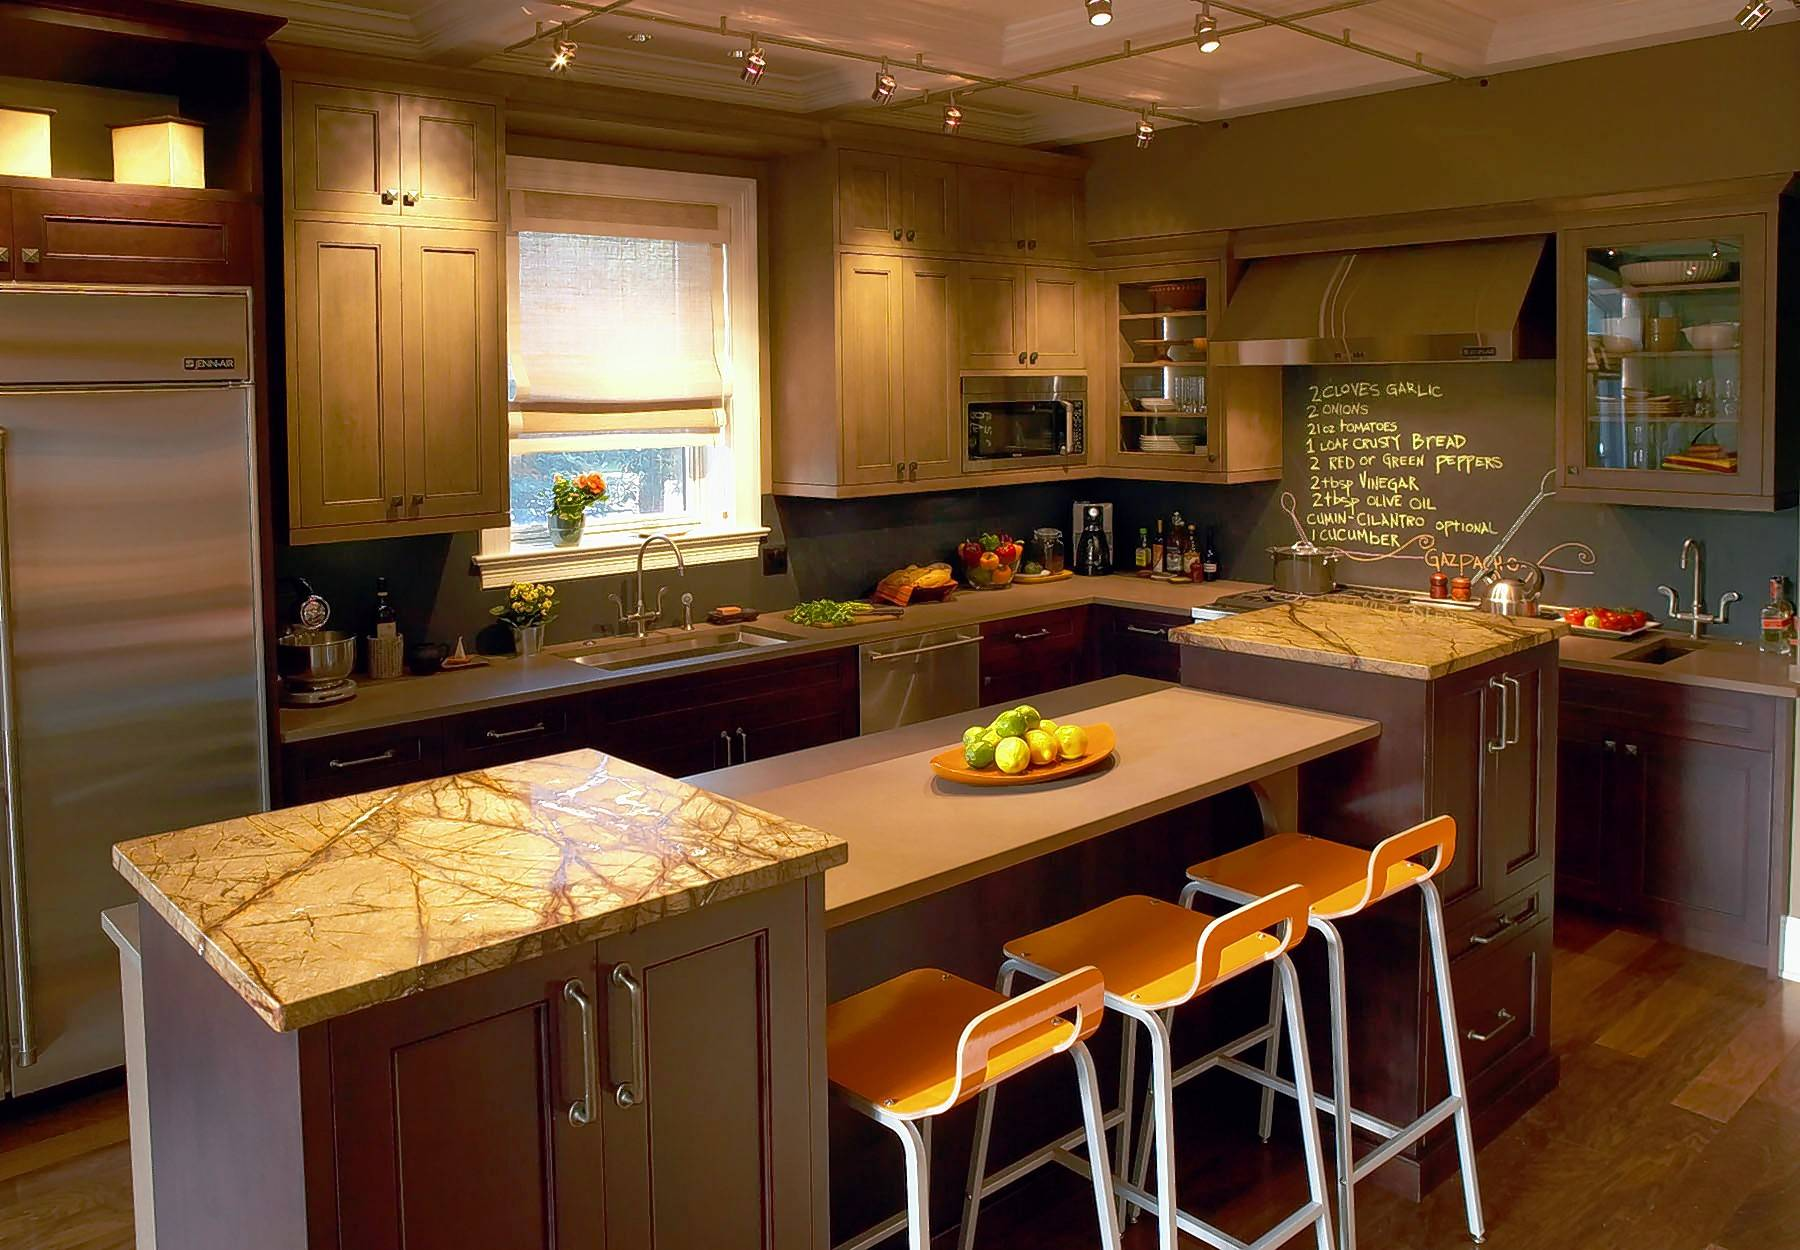 In a compact kitchen, try a narrower island like the one seen here.